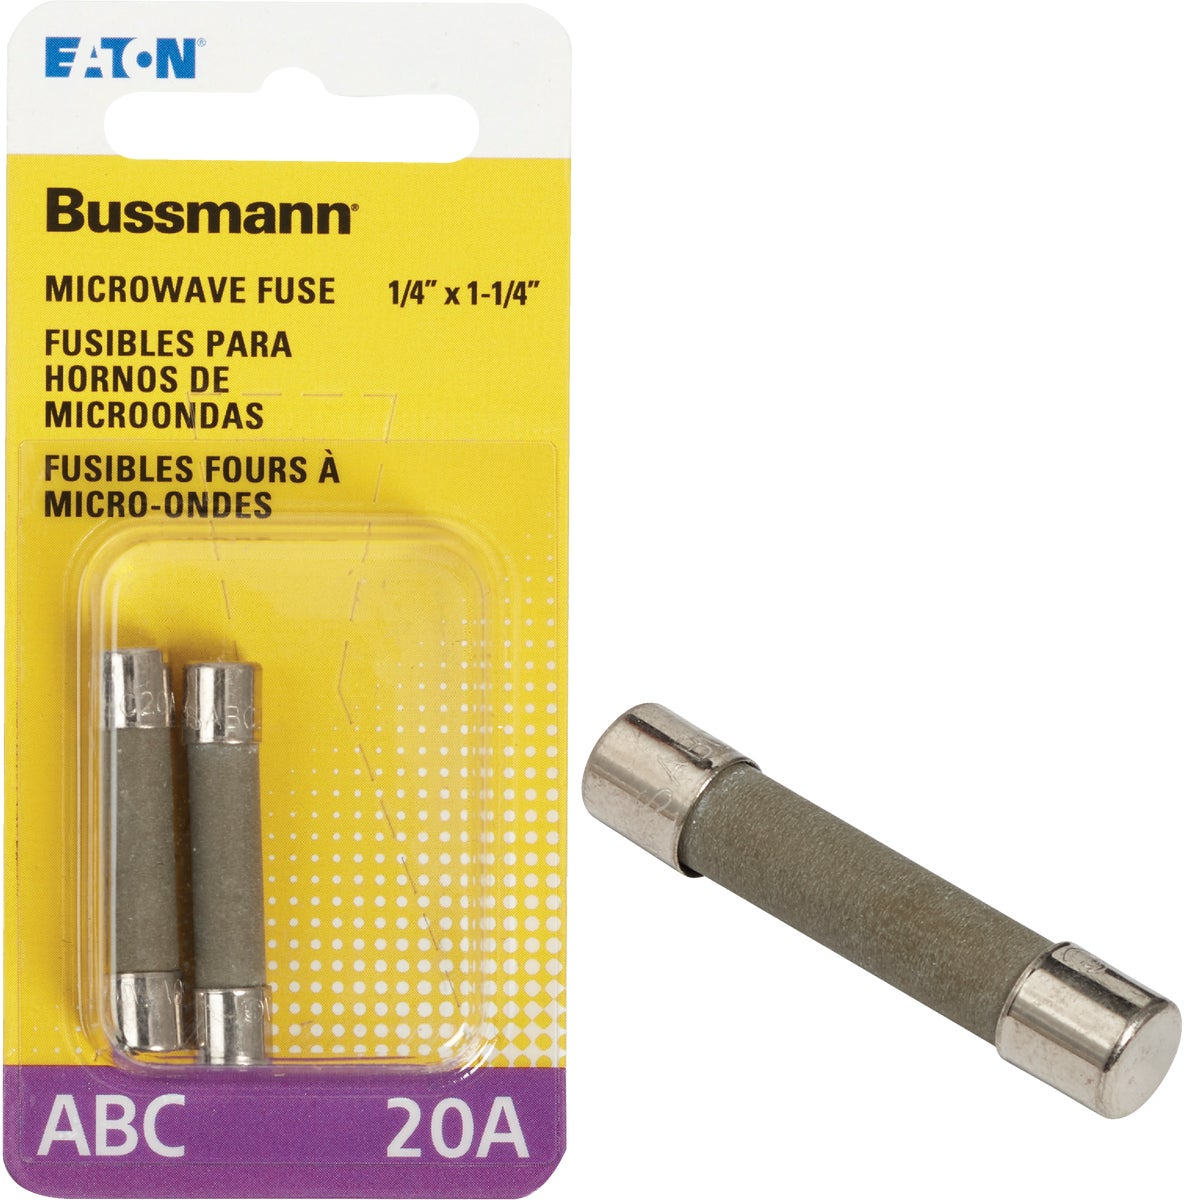 20A FAST ACTING FUSE - BP/ABC-20 by Bussmann Cooper